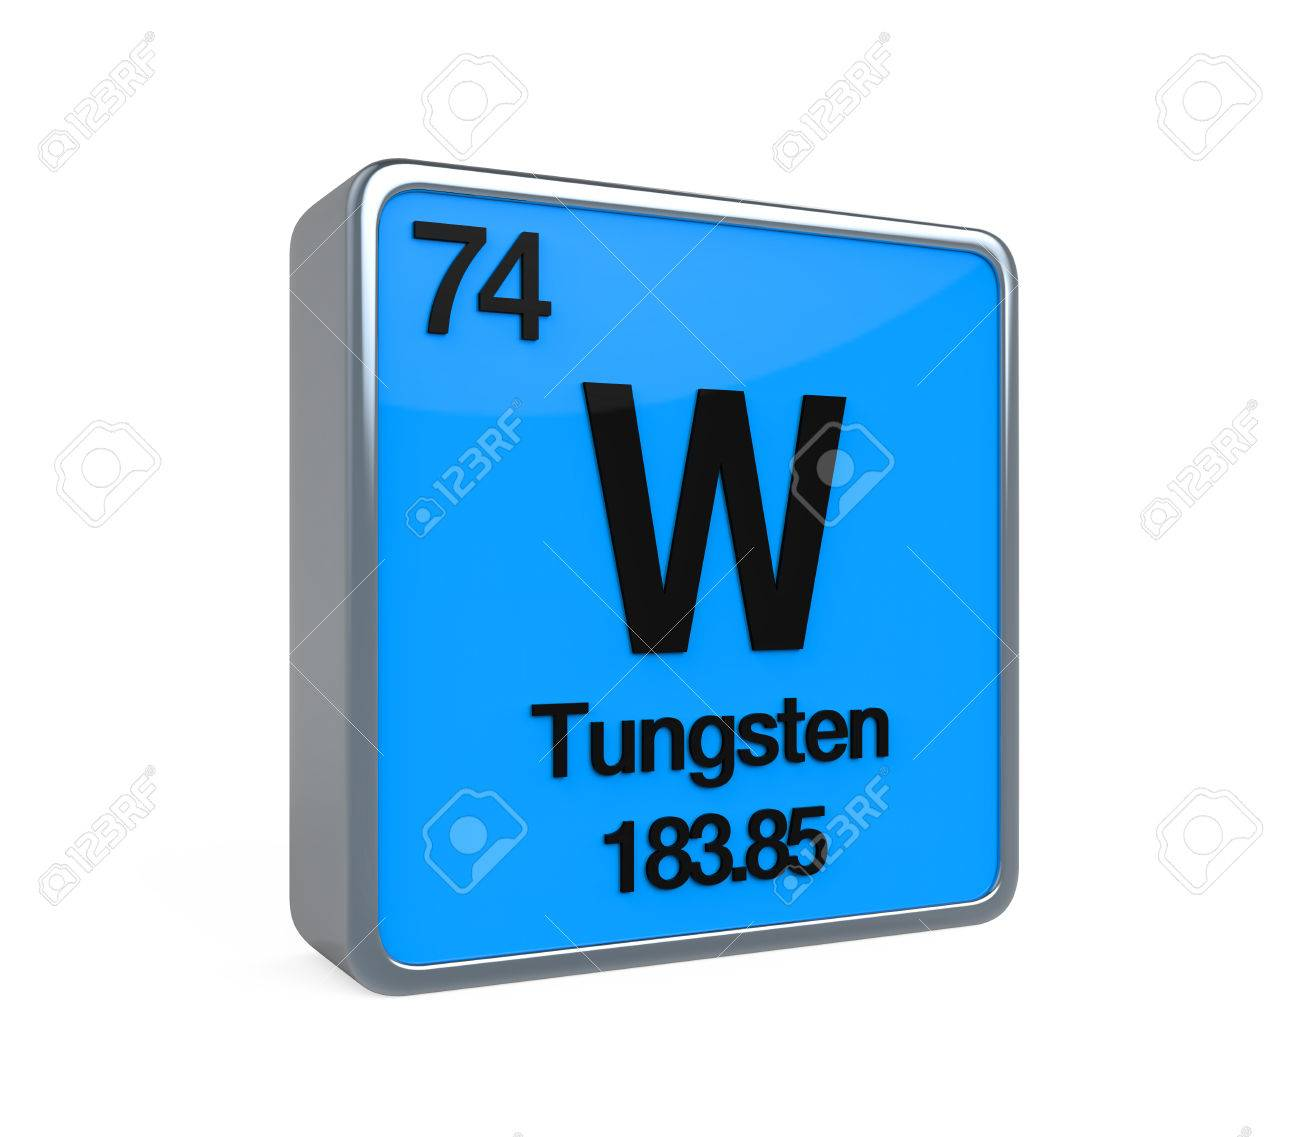 Tungsten Element Periodic Table Stock Photo Picture And Royalty